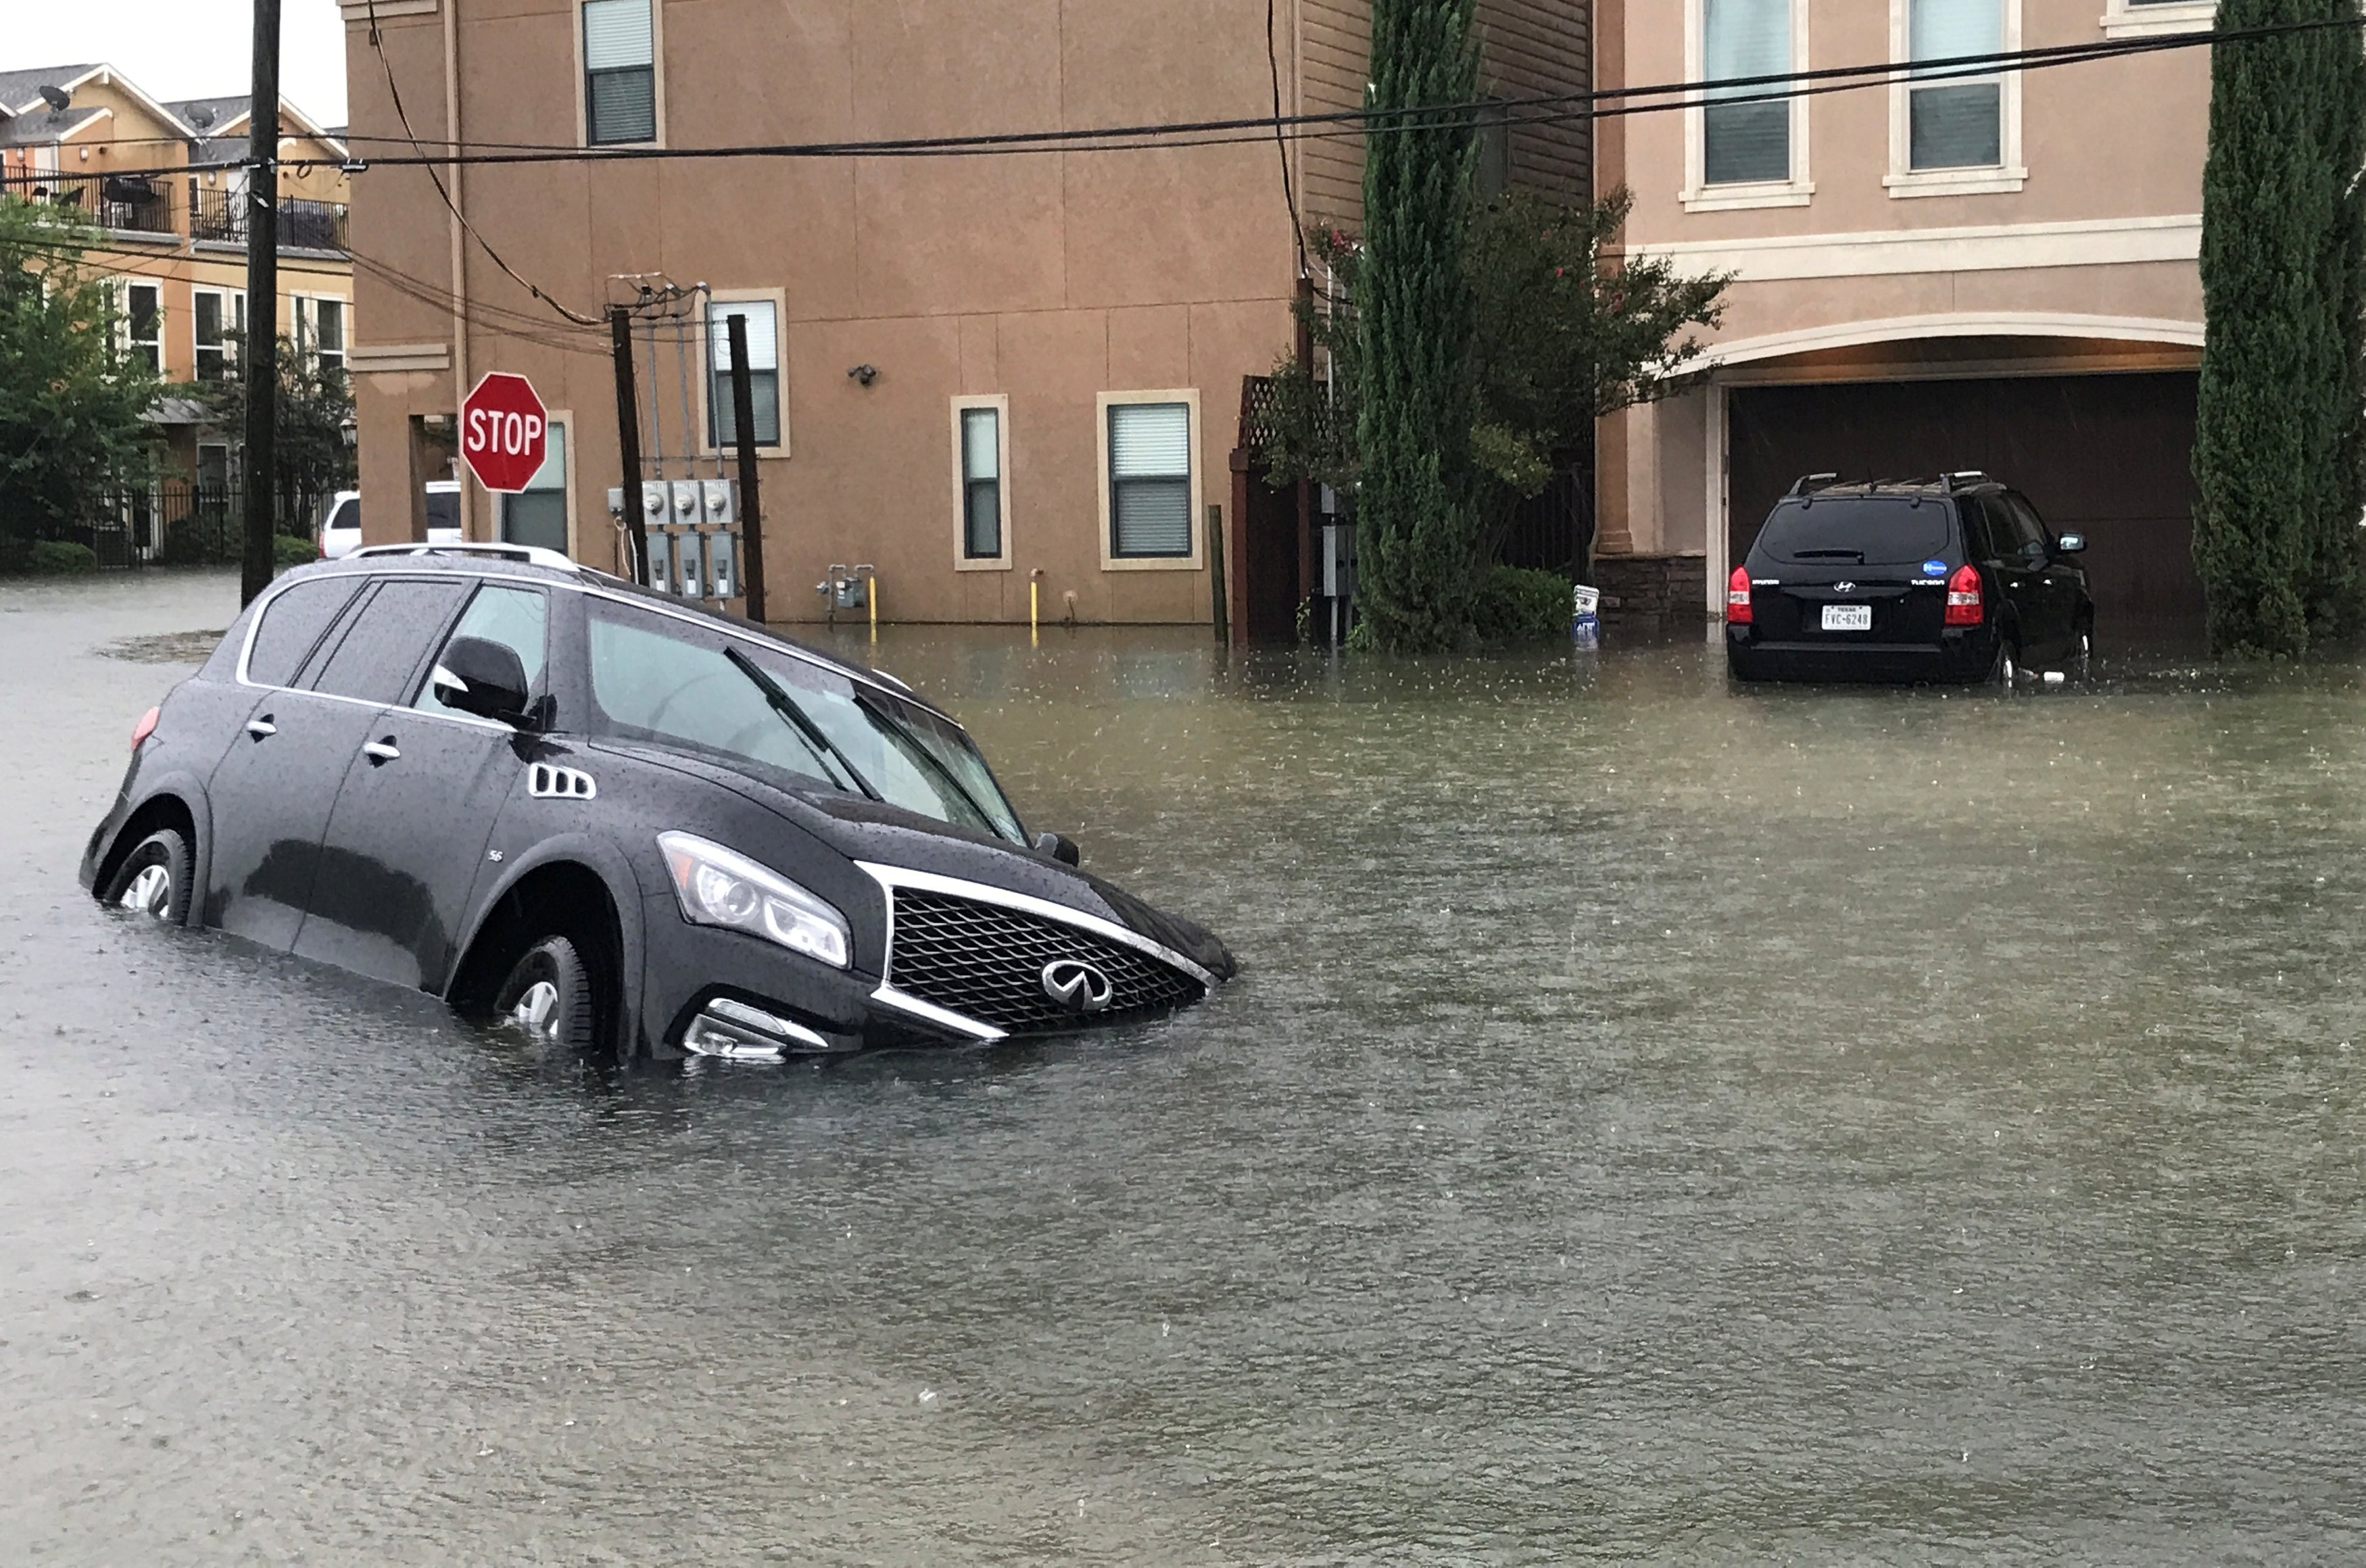 Image: A vehicle sits half submerged in flood waters in a residential area in the aftermath of Hurricane Harvey in Houston